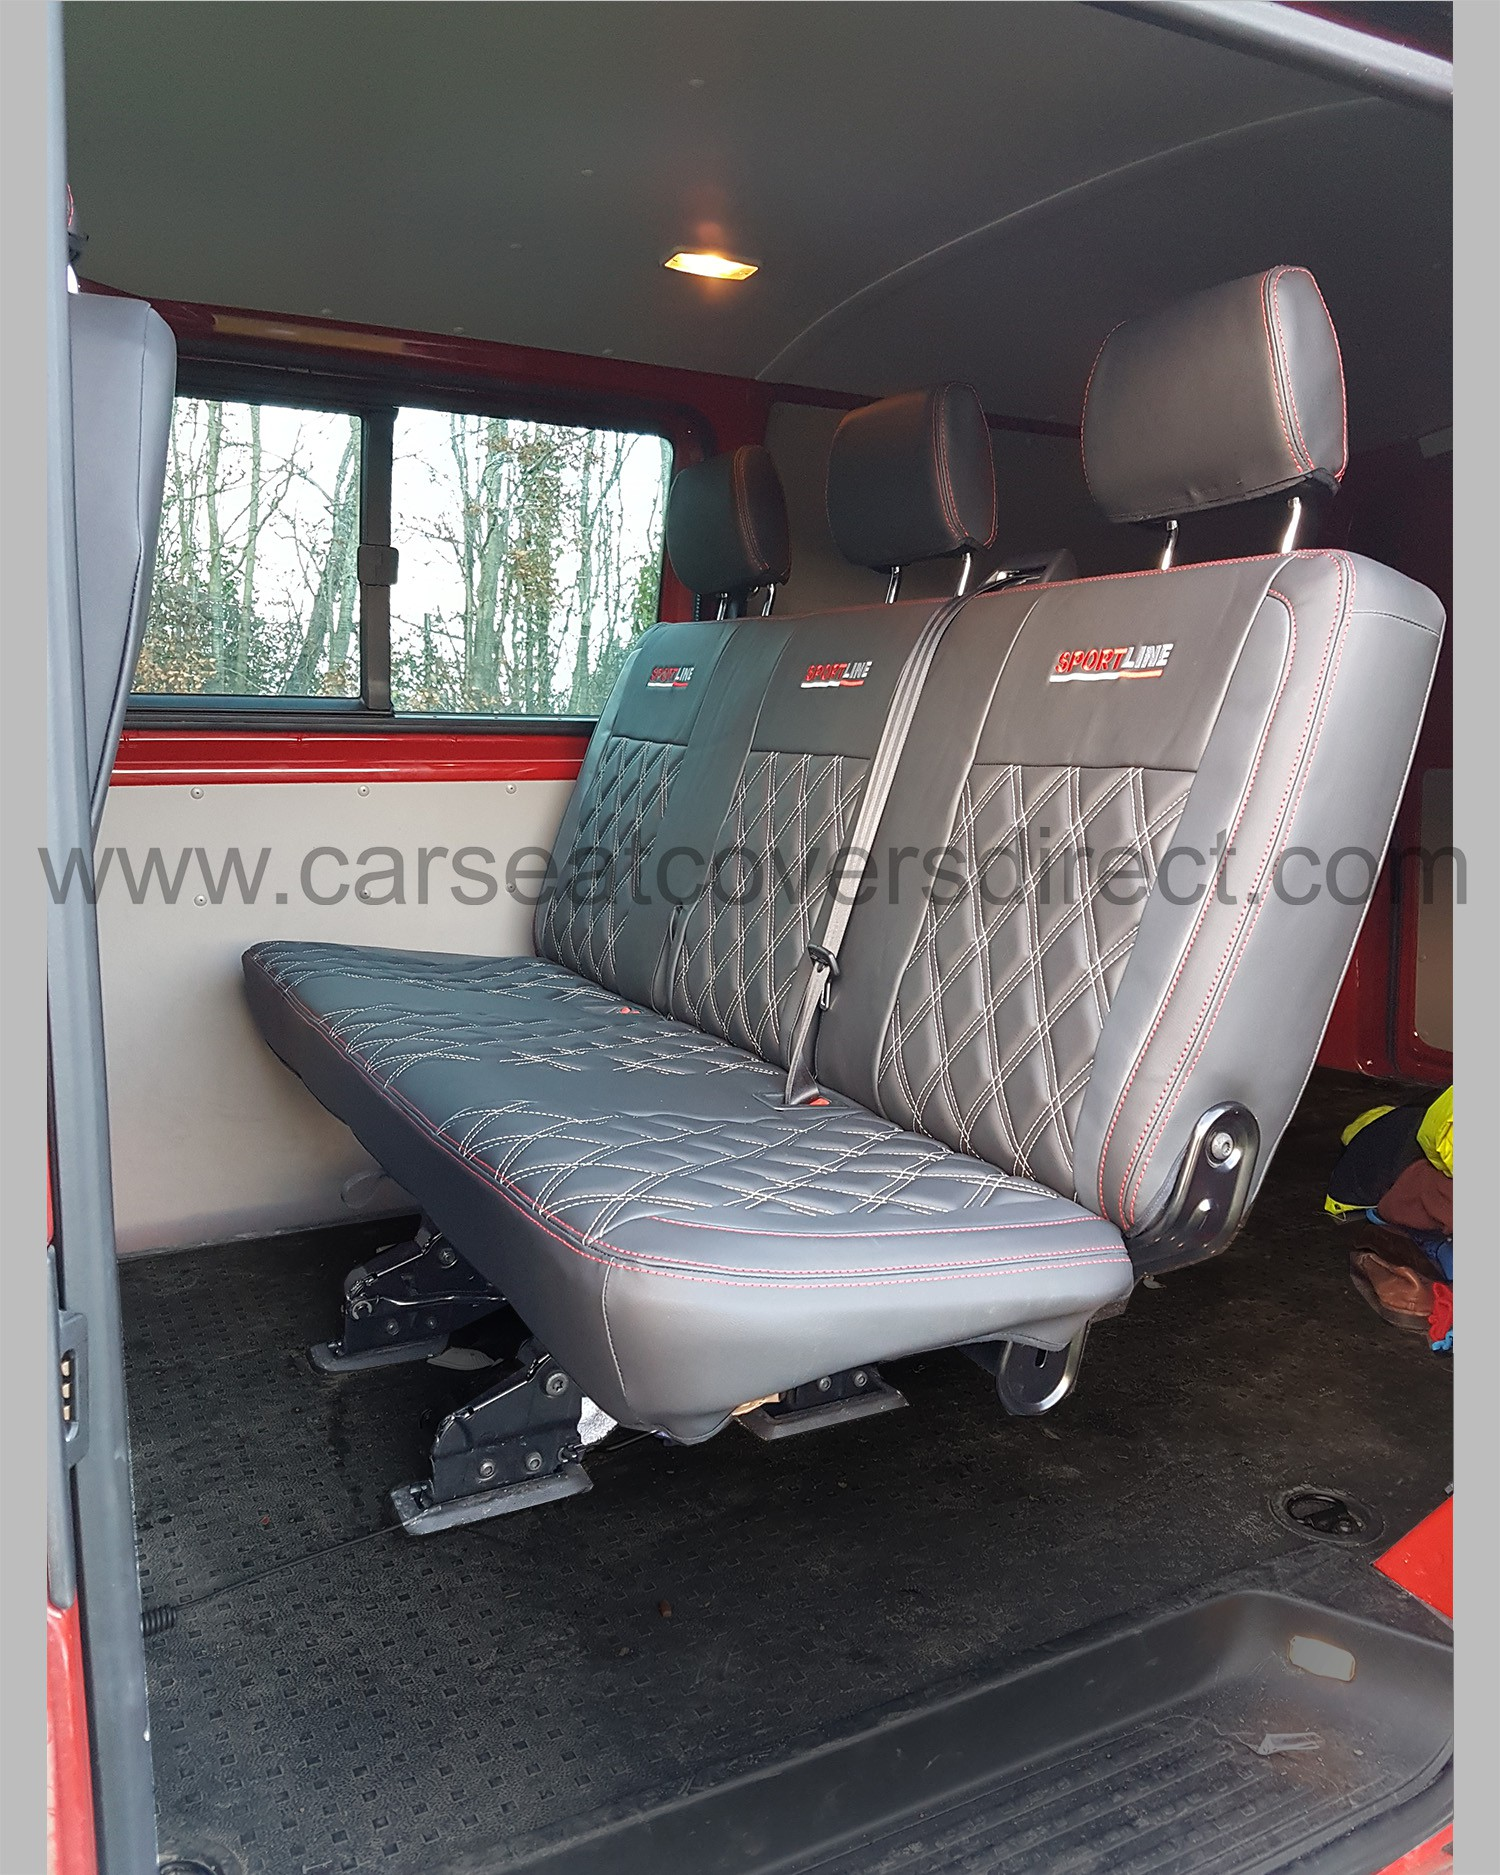 VW Transporter T5 Kombi Seat Covers - Charcoal Grey with ...